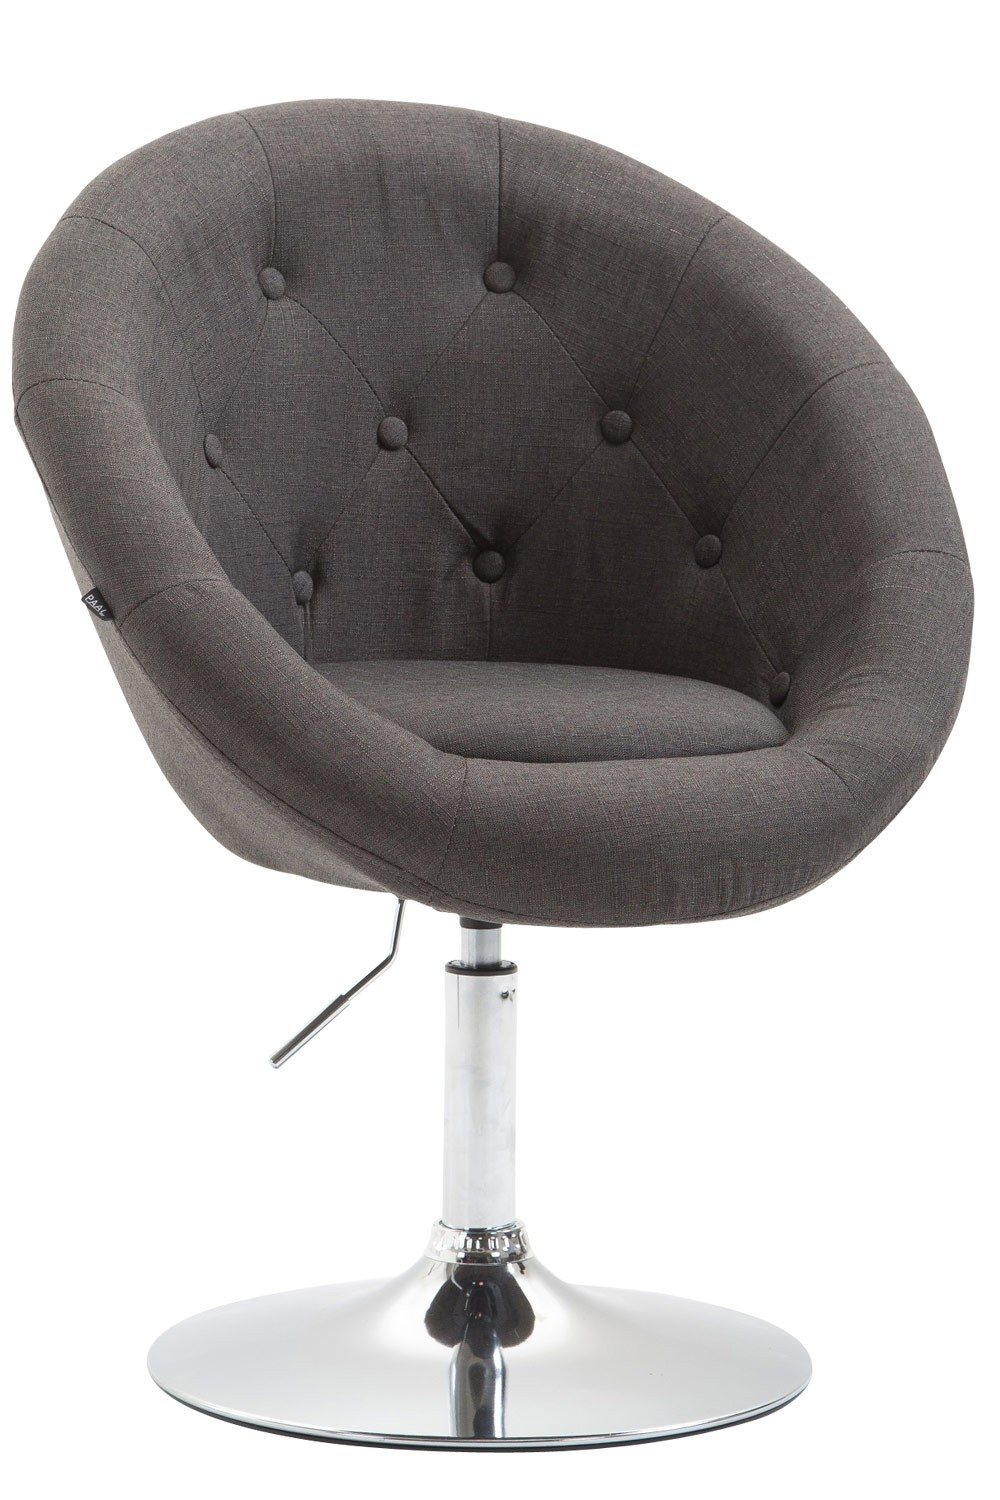 Fauteuil lounge London V2 tissu